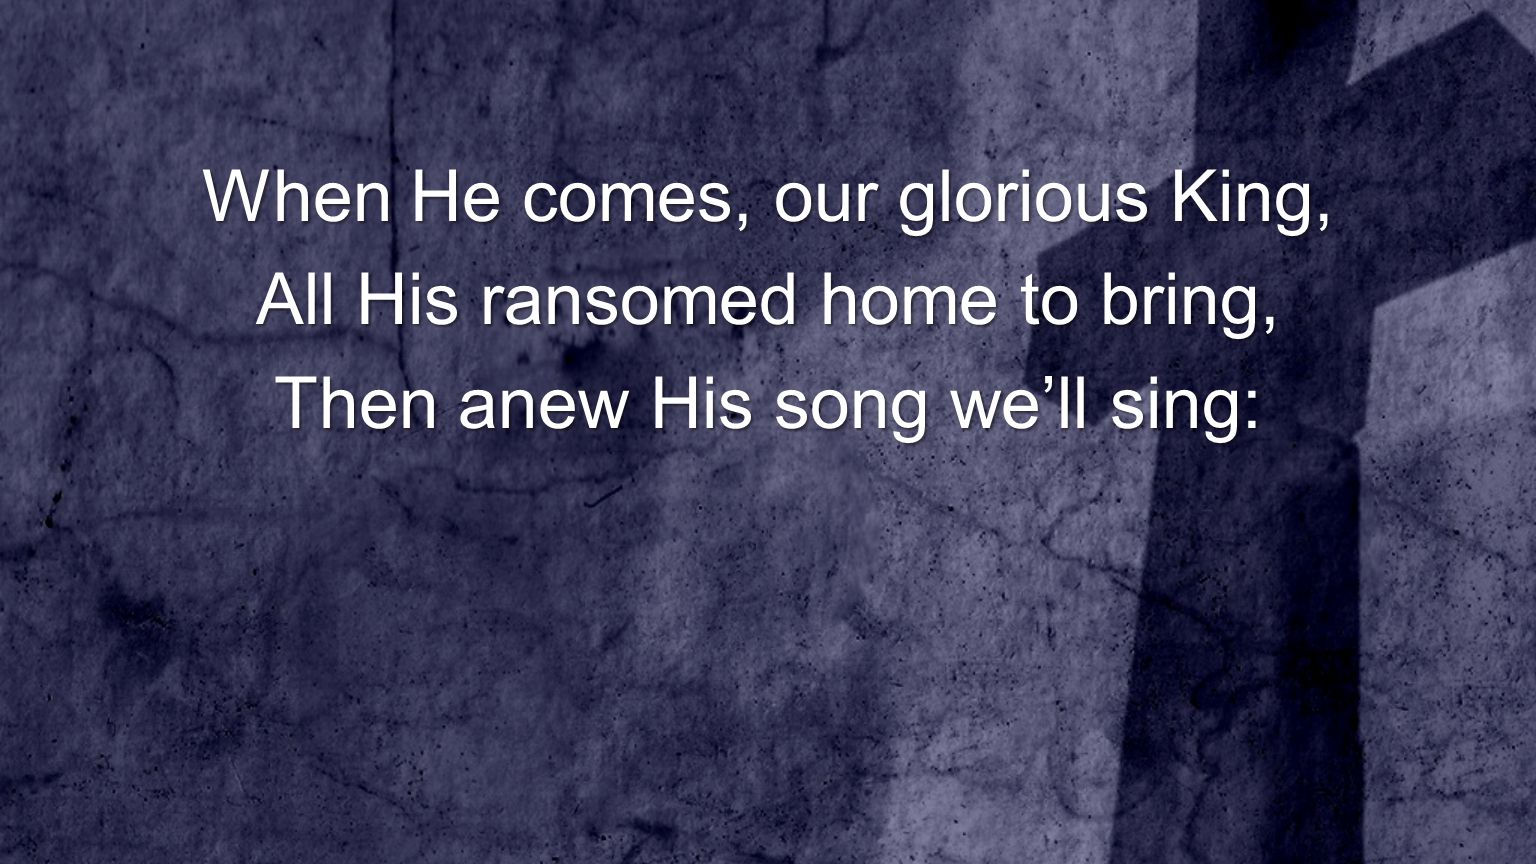 When He comes, our glorious King, All His ransomed home to bring, Then anew His song we'll sing: